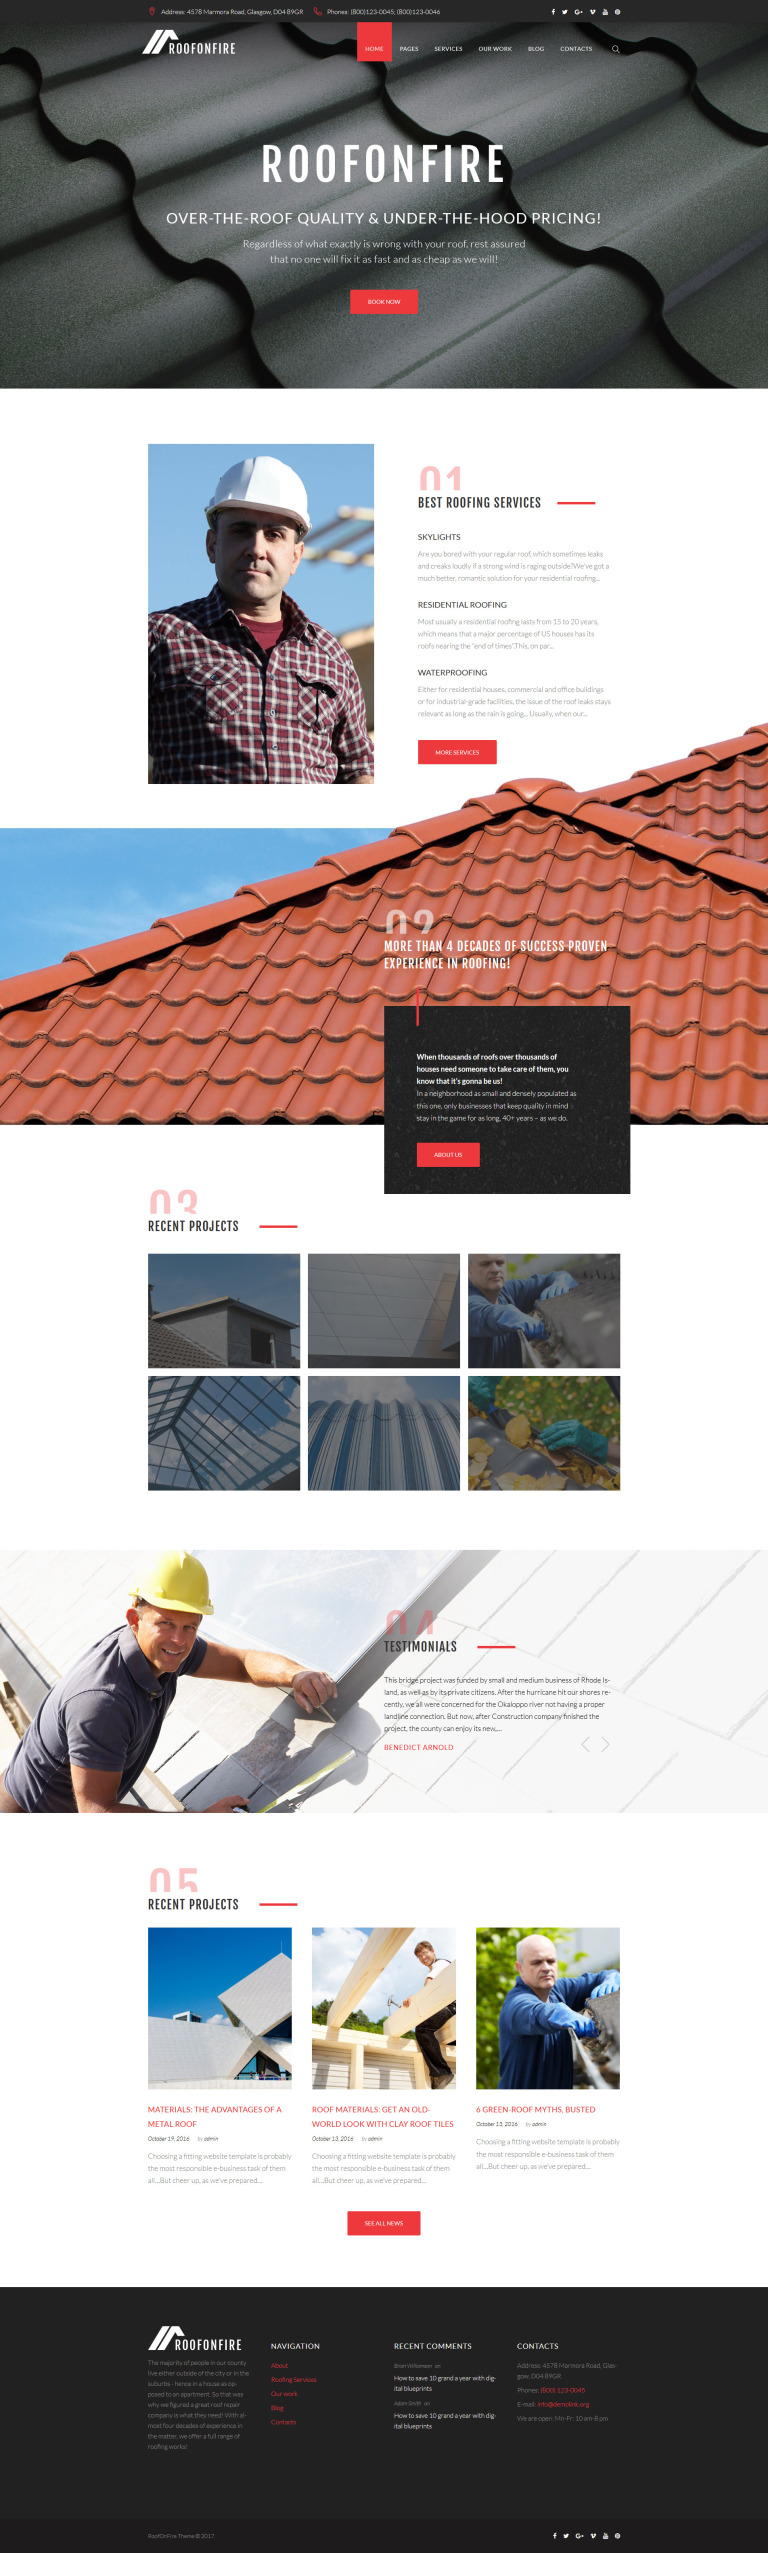 RoofOnFire - Roofing Company Responsive WordPress Theme New Screenshots BIG